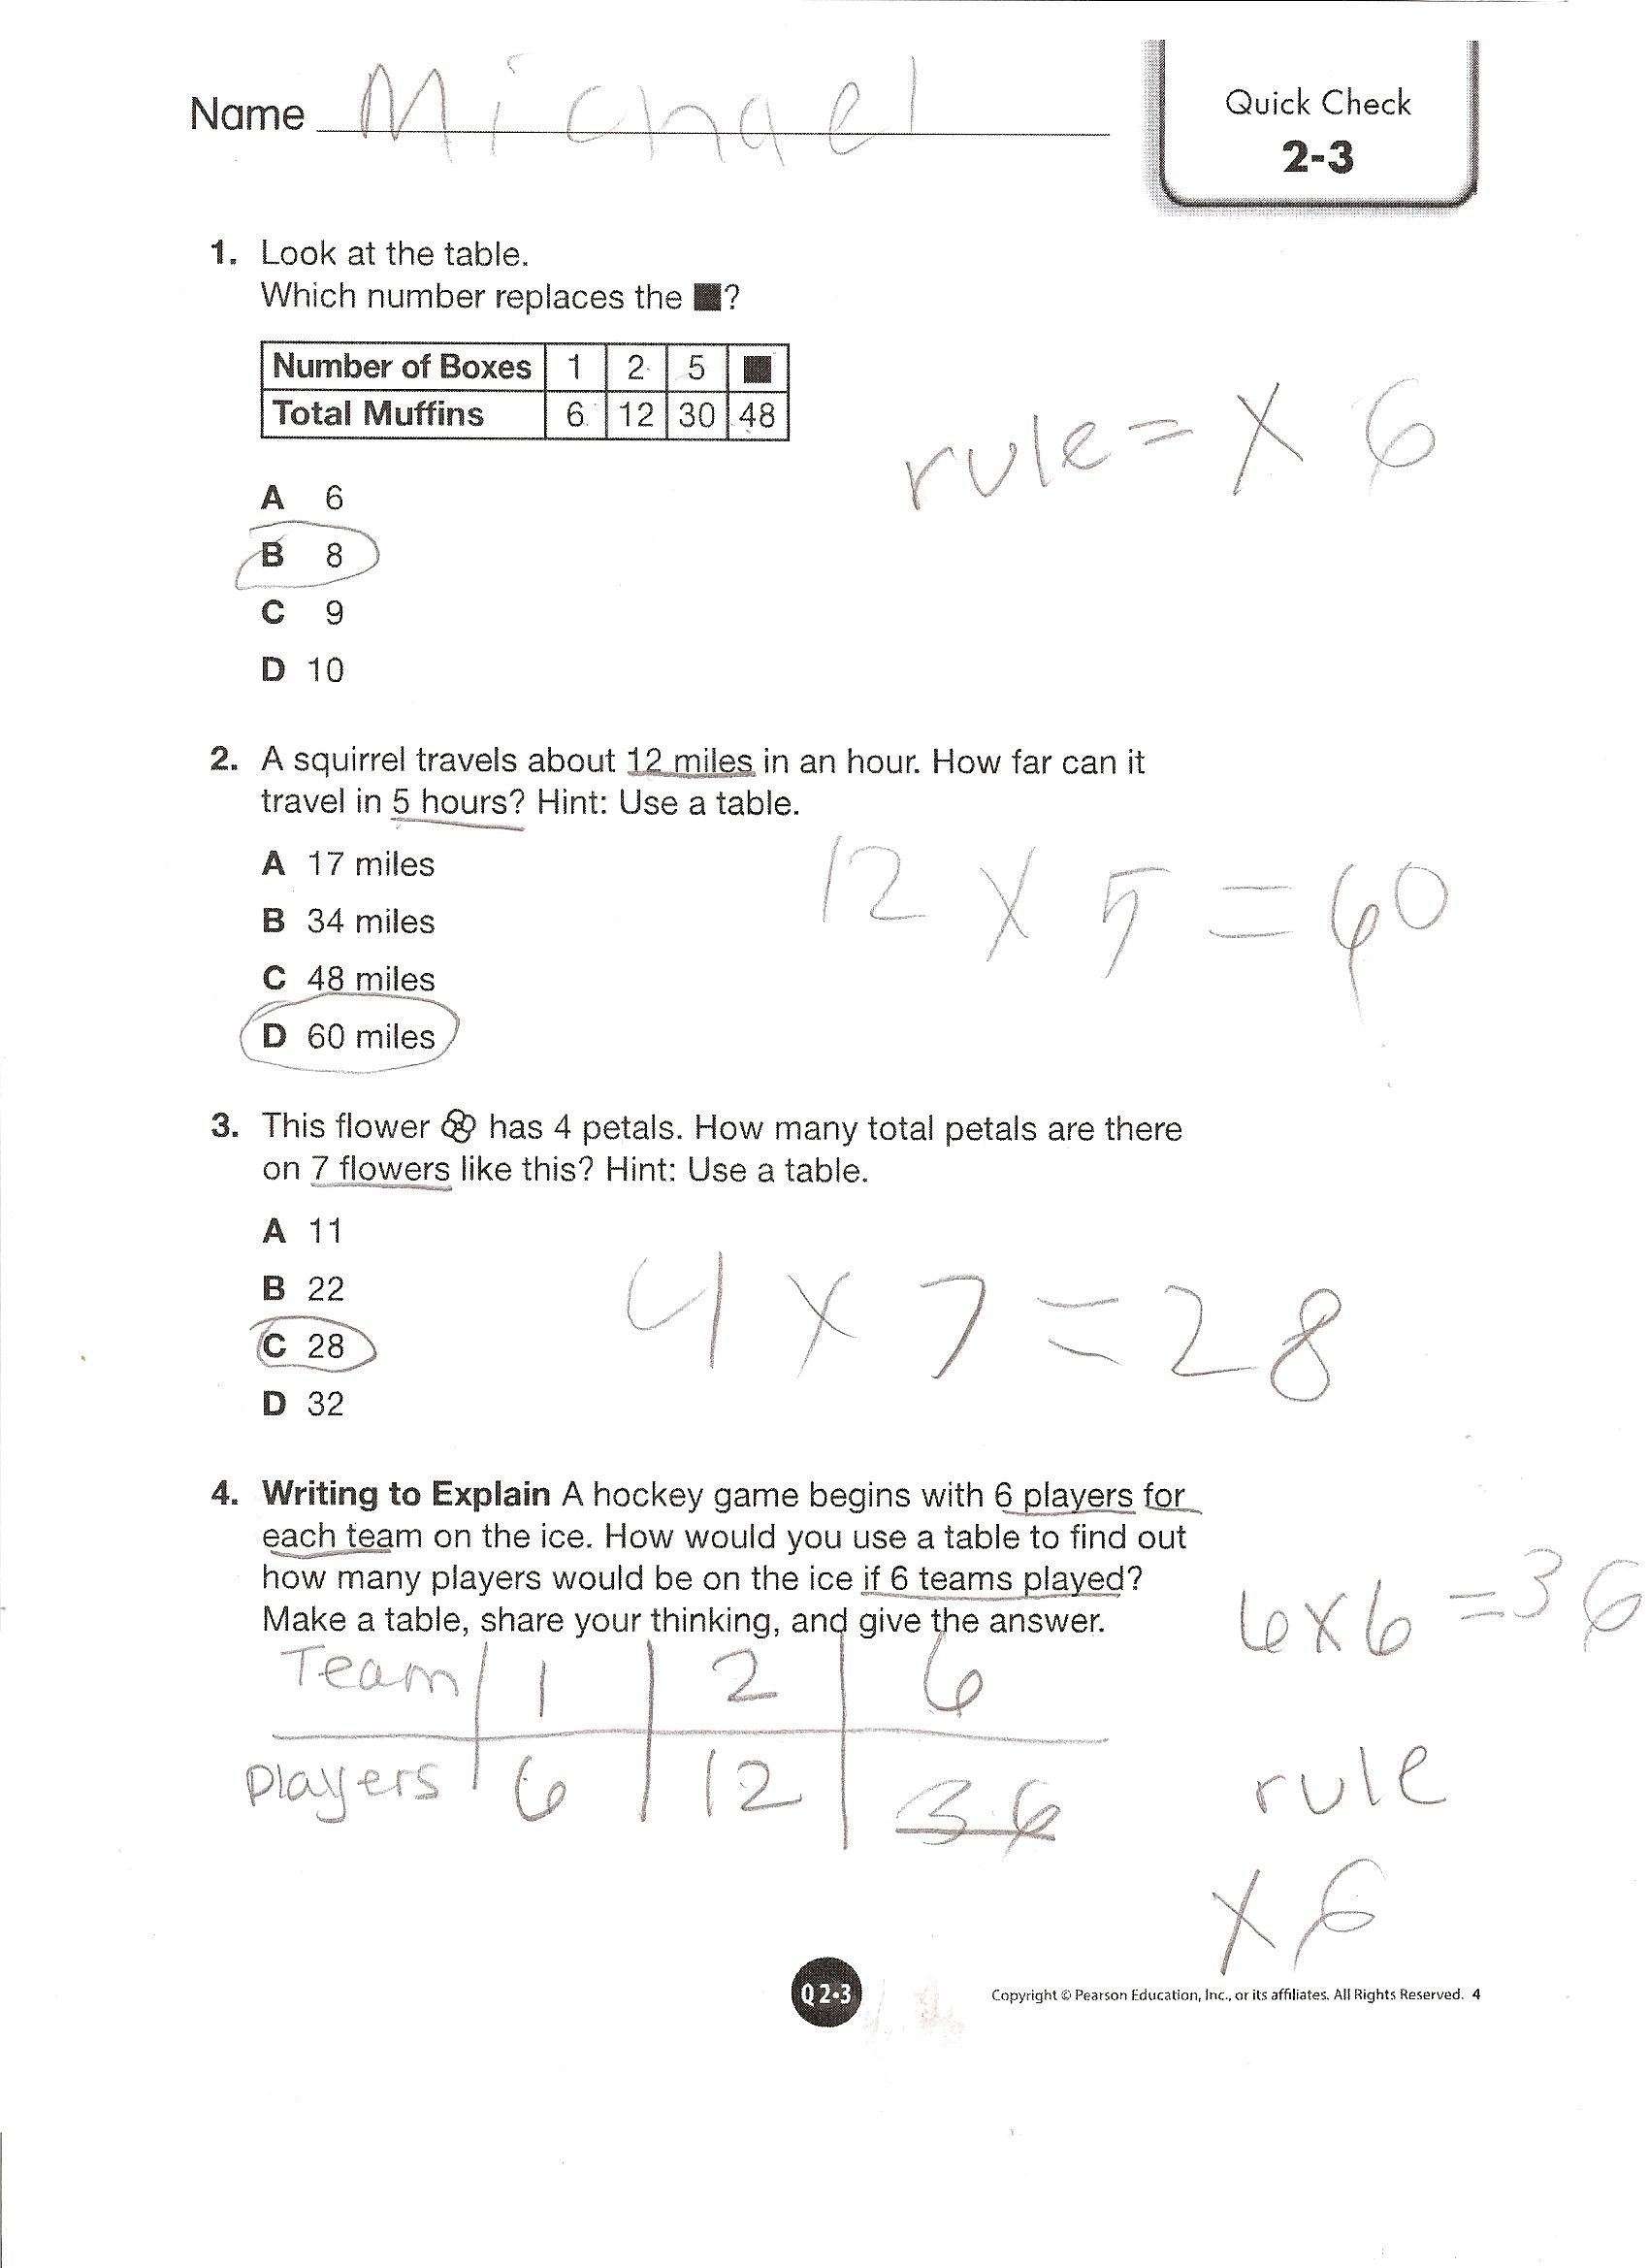 Free Worksheet Envision Math 3rd Grade Worksheets envision math 4th grade vocabulary activities 4 topic 2 3 quick check